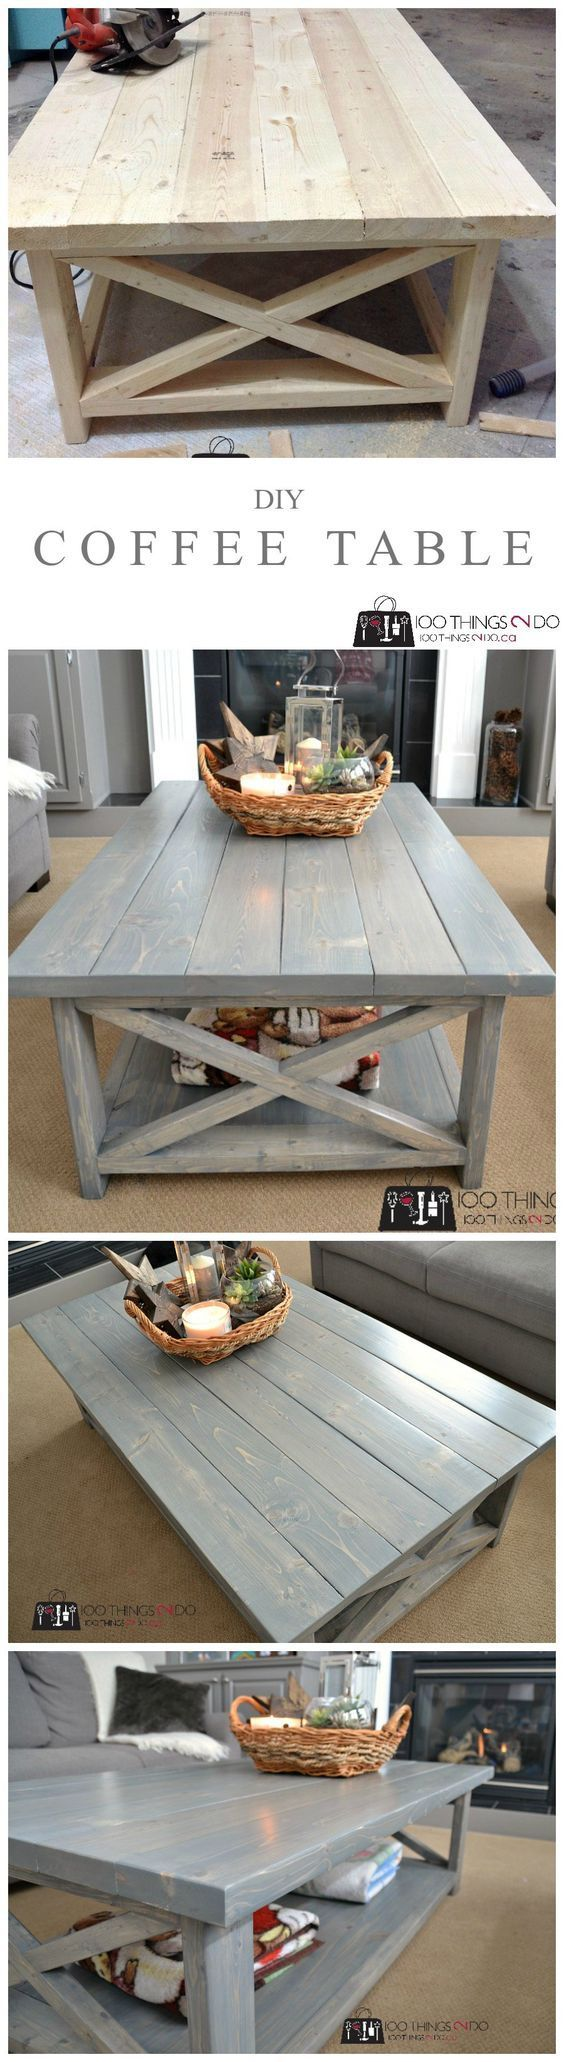 15 Easy Diy Reclaimed Wood Projects Diy Coffee Tablerustic